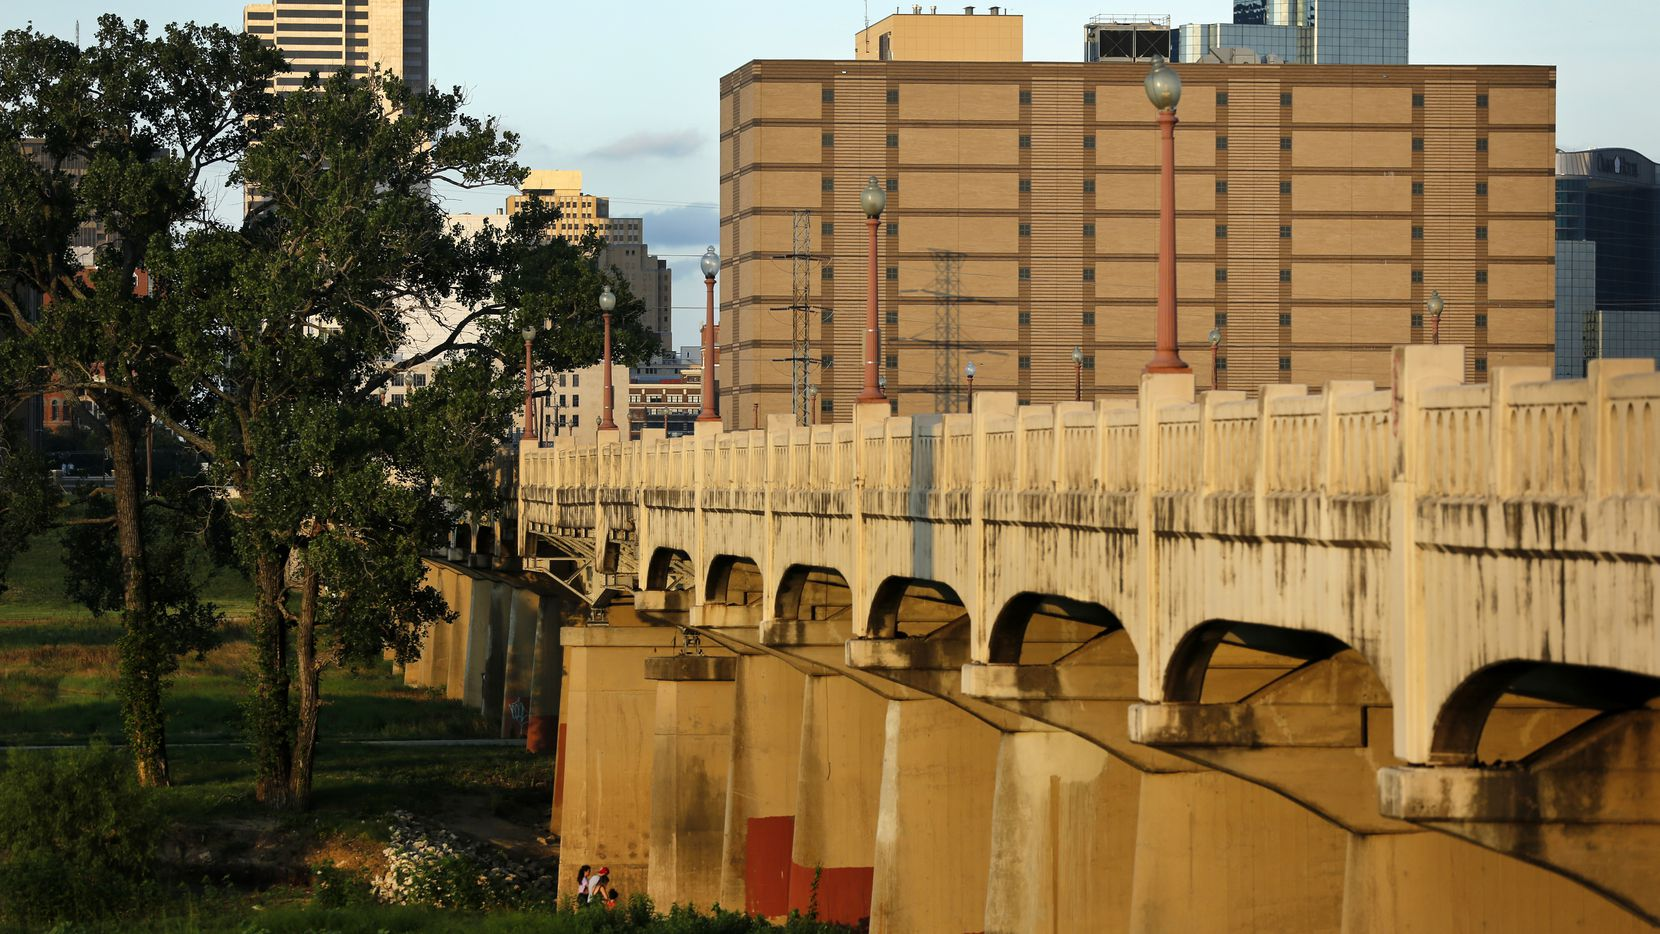 The former Jesse R. Dawson State Jail (top right) near downtown Dallas is pictured across the Commerce Street bridge, July 7, 2020.